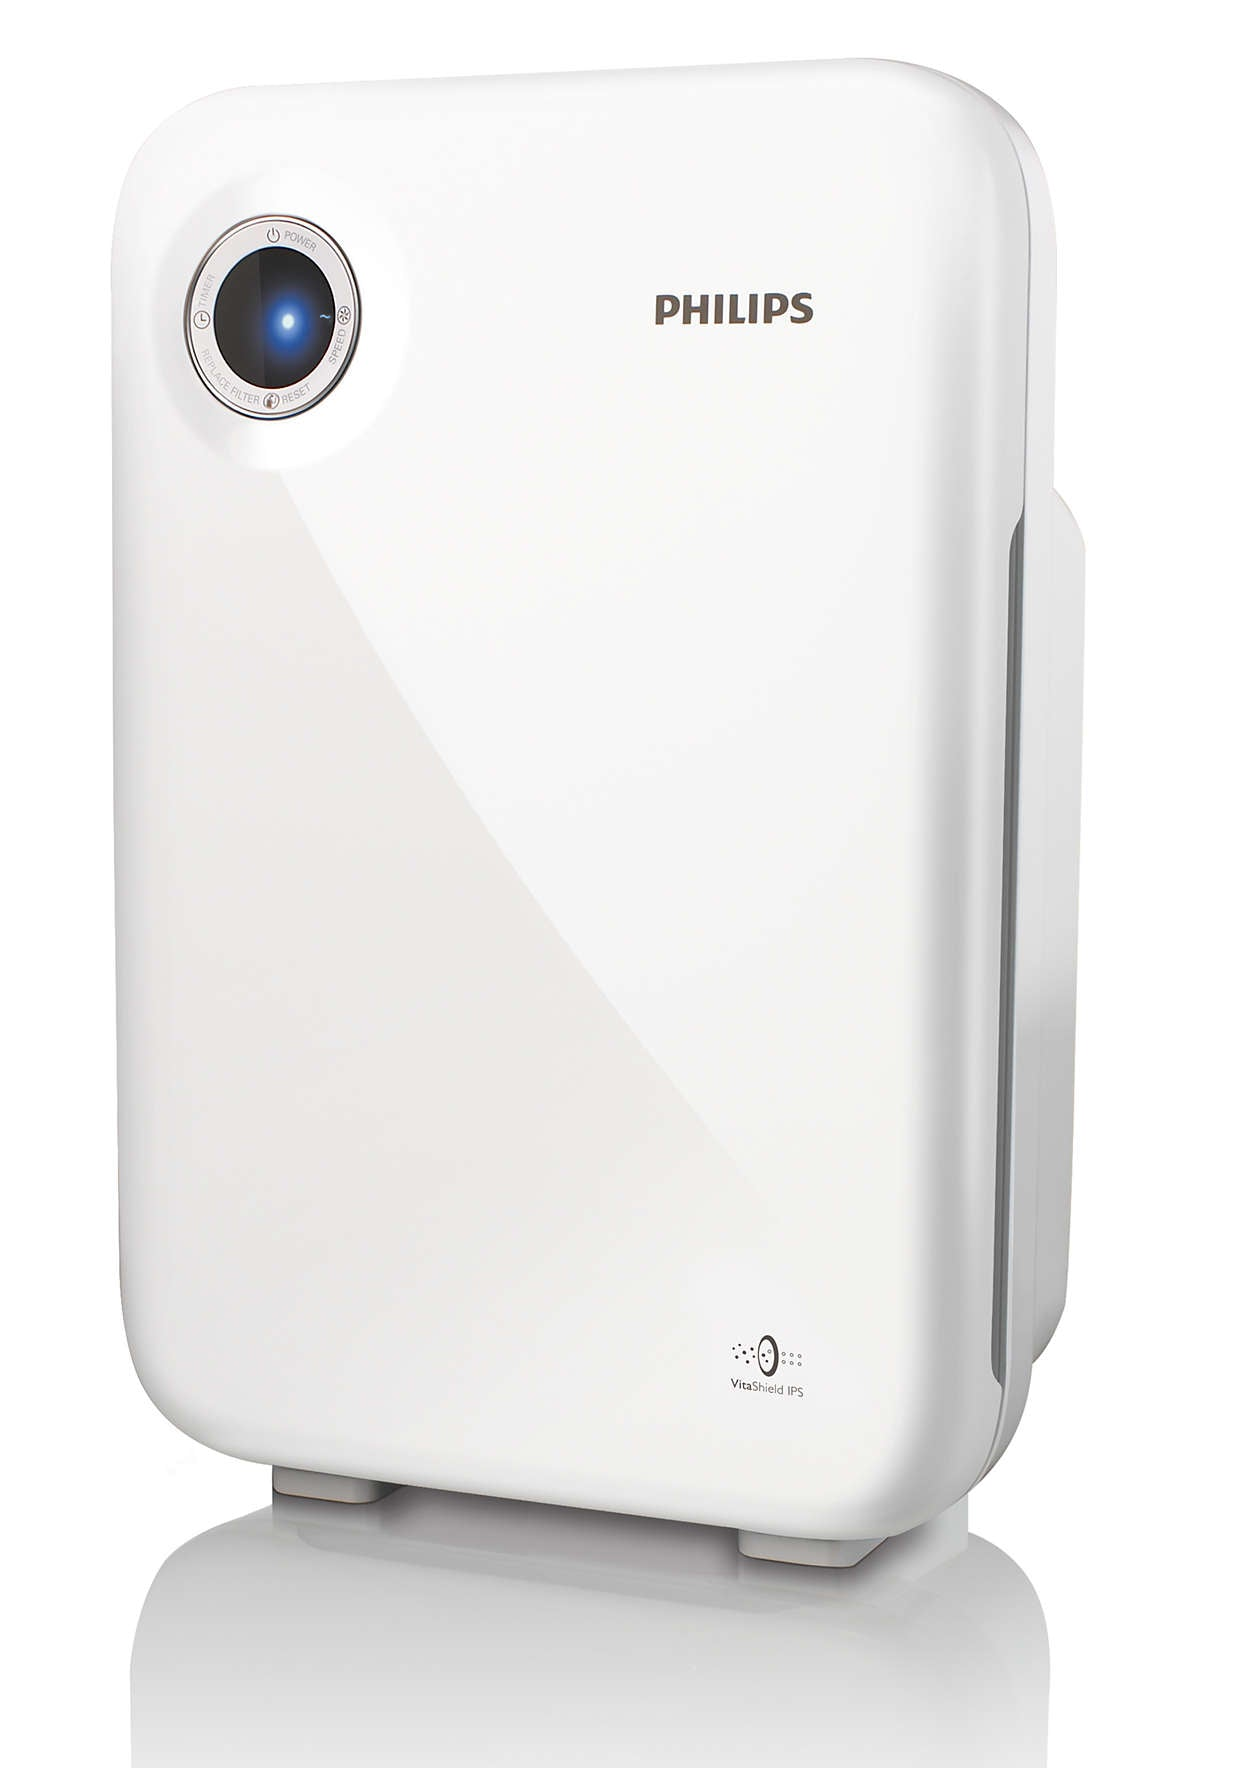 Philips Air purifier Sleep mode Smart sensor - AC4012/02